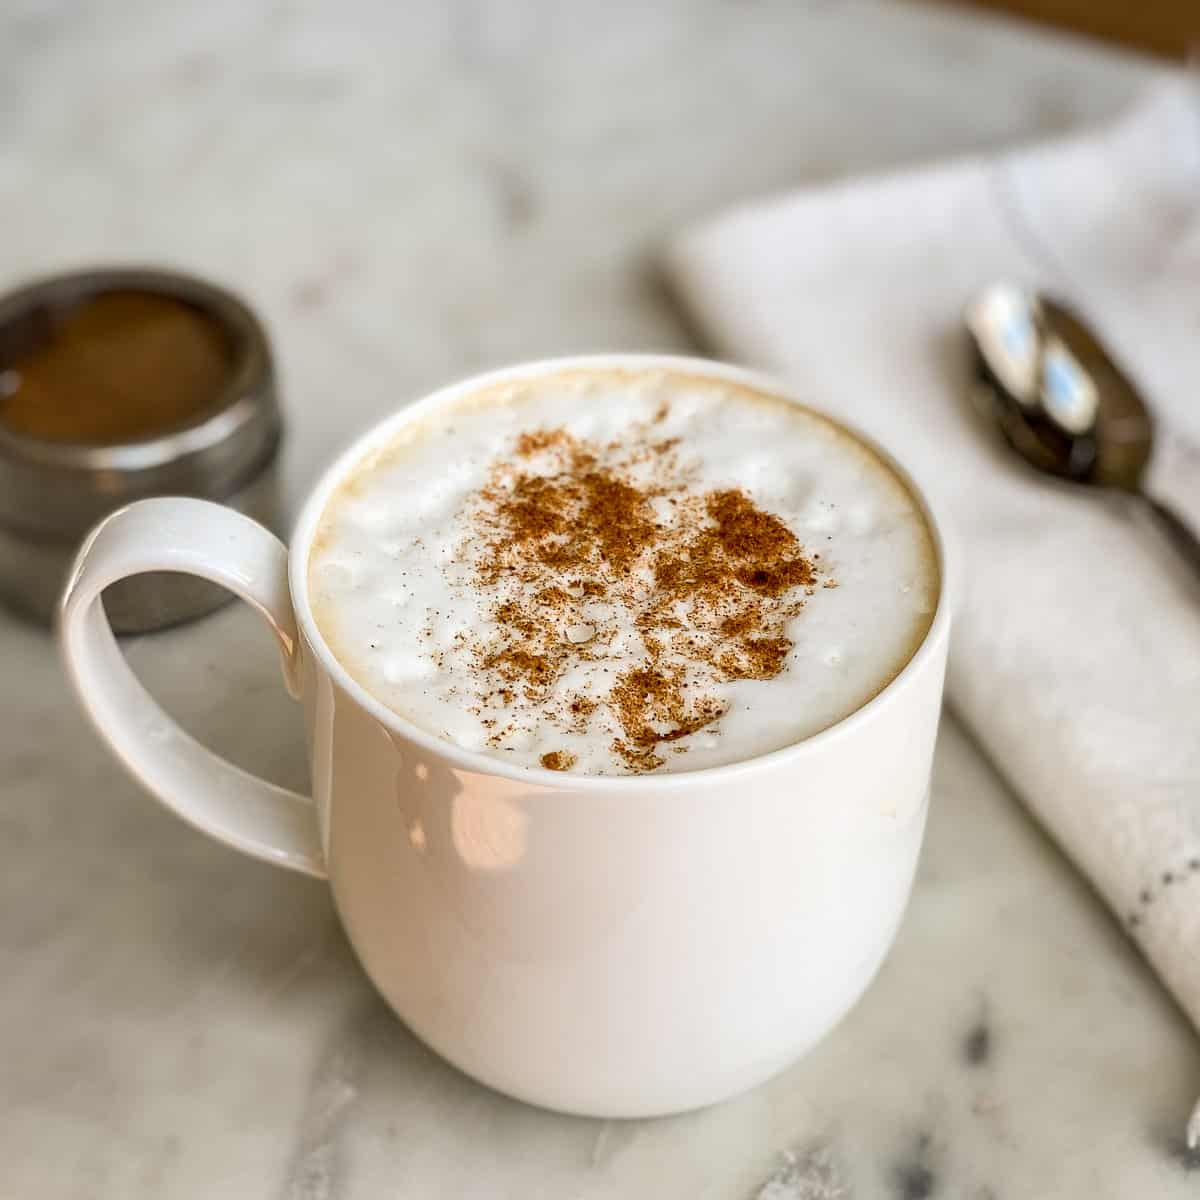 White coffee cup with Pumpkin Spice sprinkled on a Pumpkin Spice Latte with spoon and spices in background.